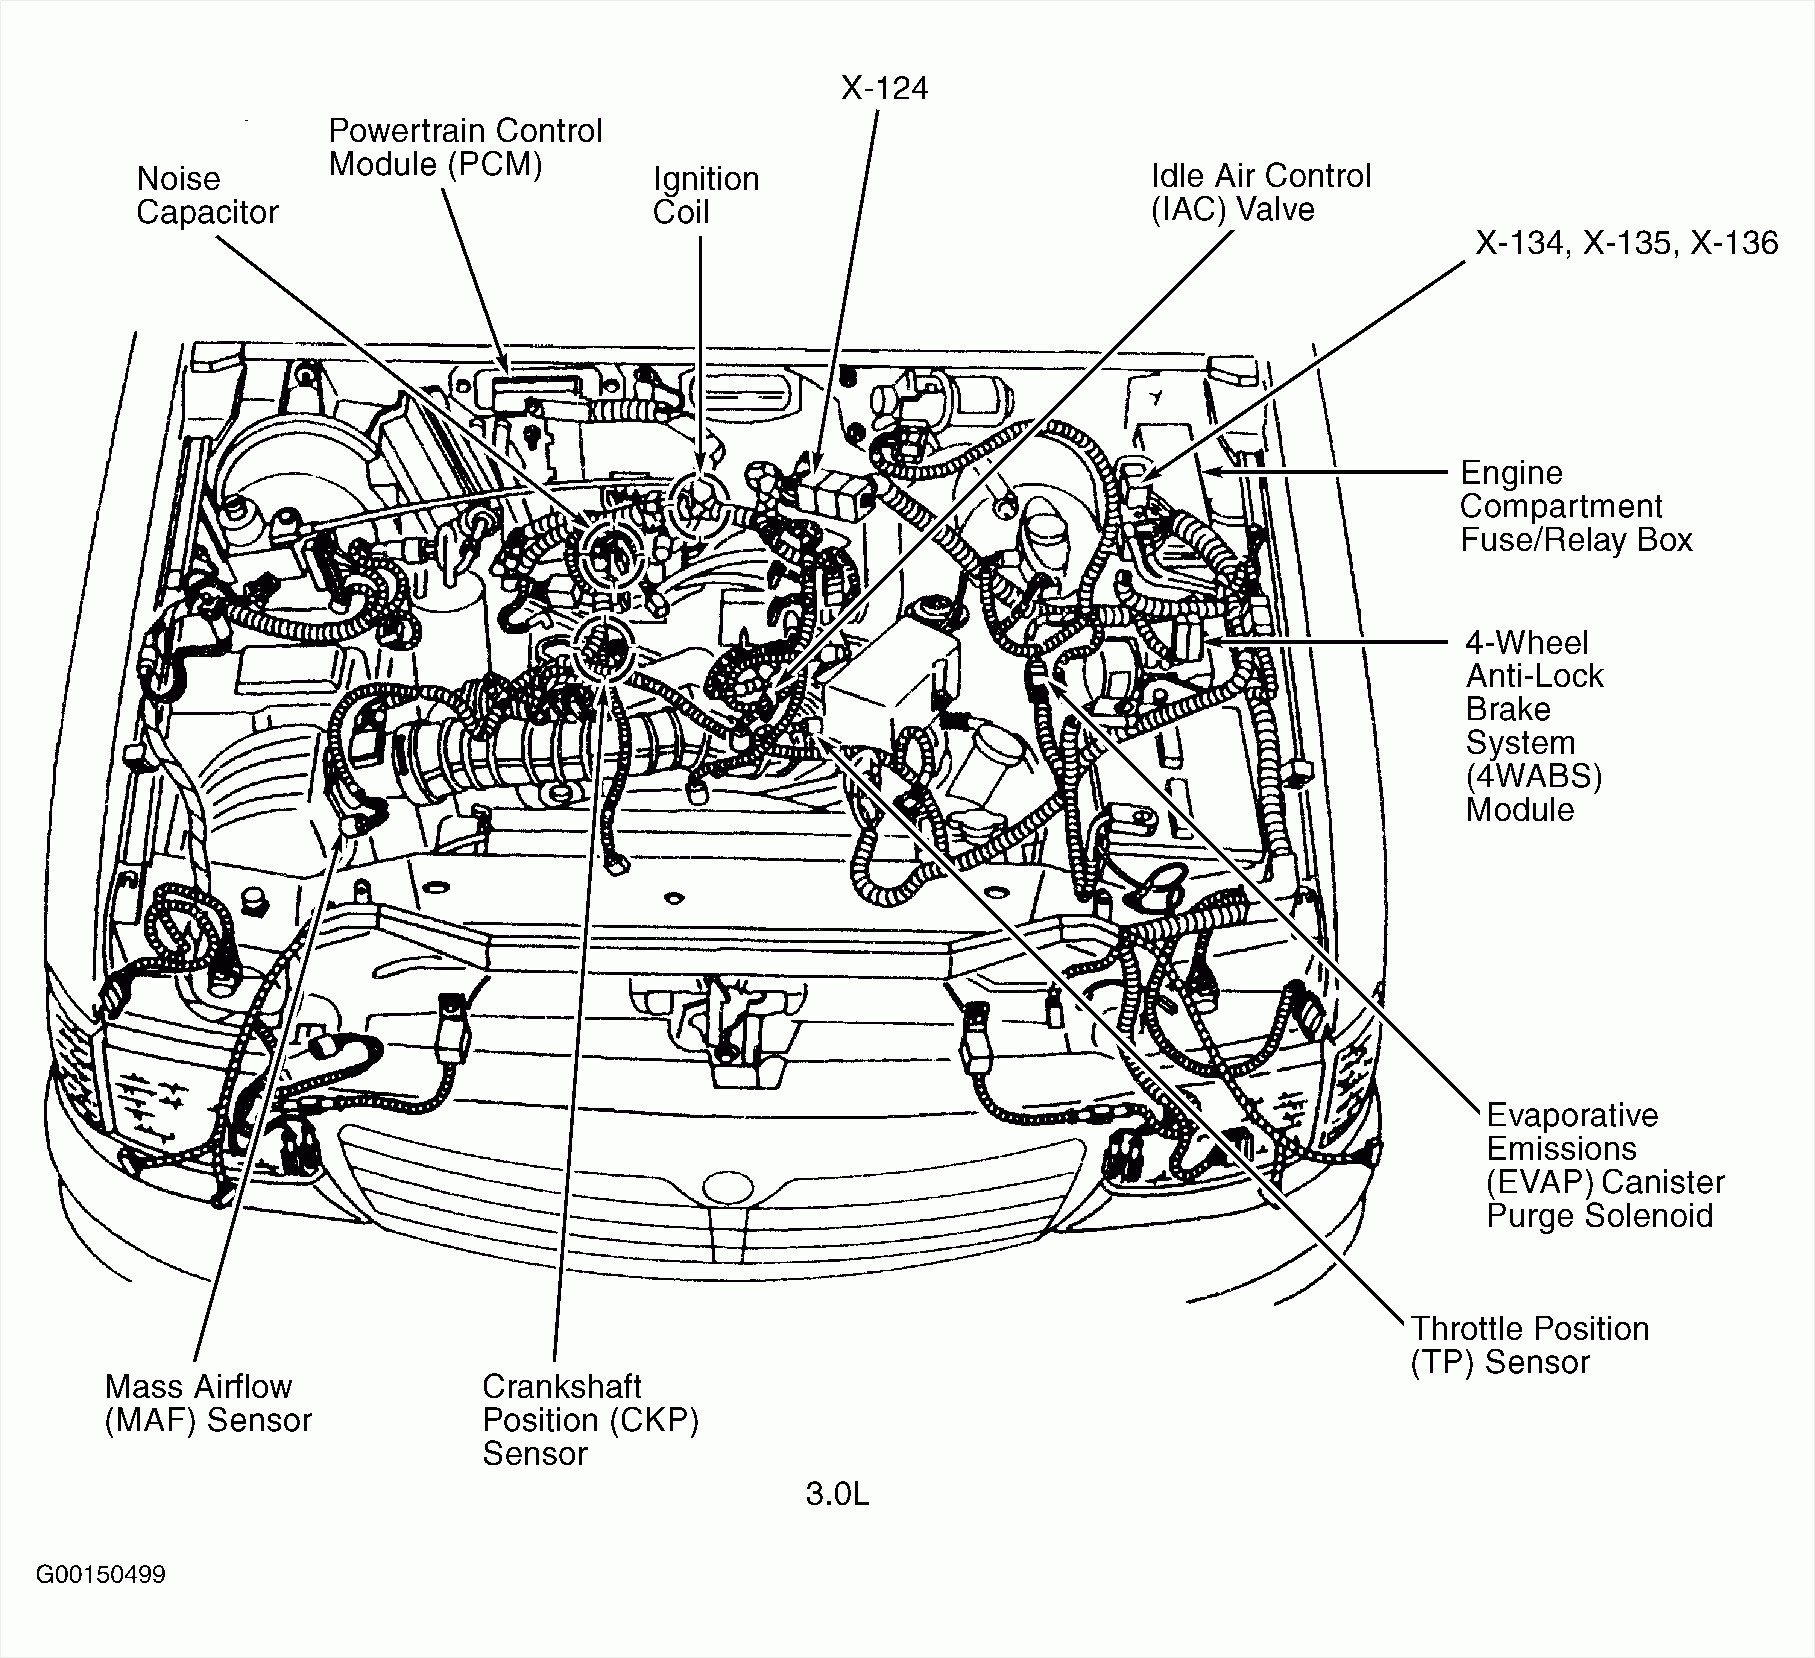 2011 Vw Tiguan 2 0t Engine Diagram - Wiring Diagram Replace work-check -  work-check.miramontiseo.itwork-check.miramontiseo.it